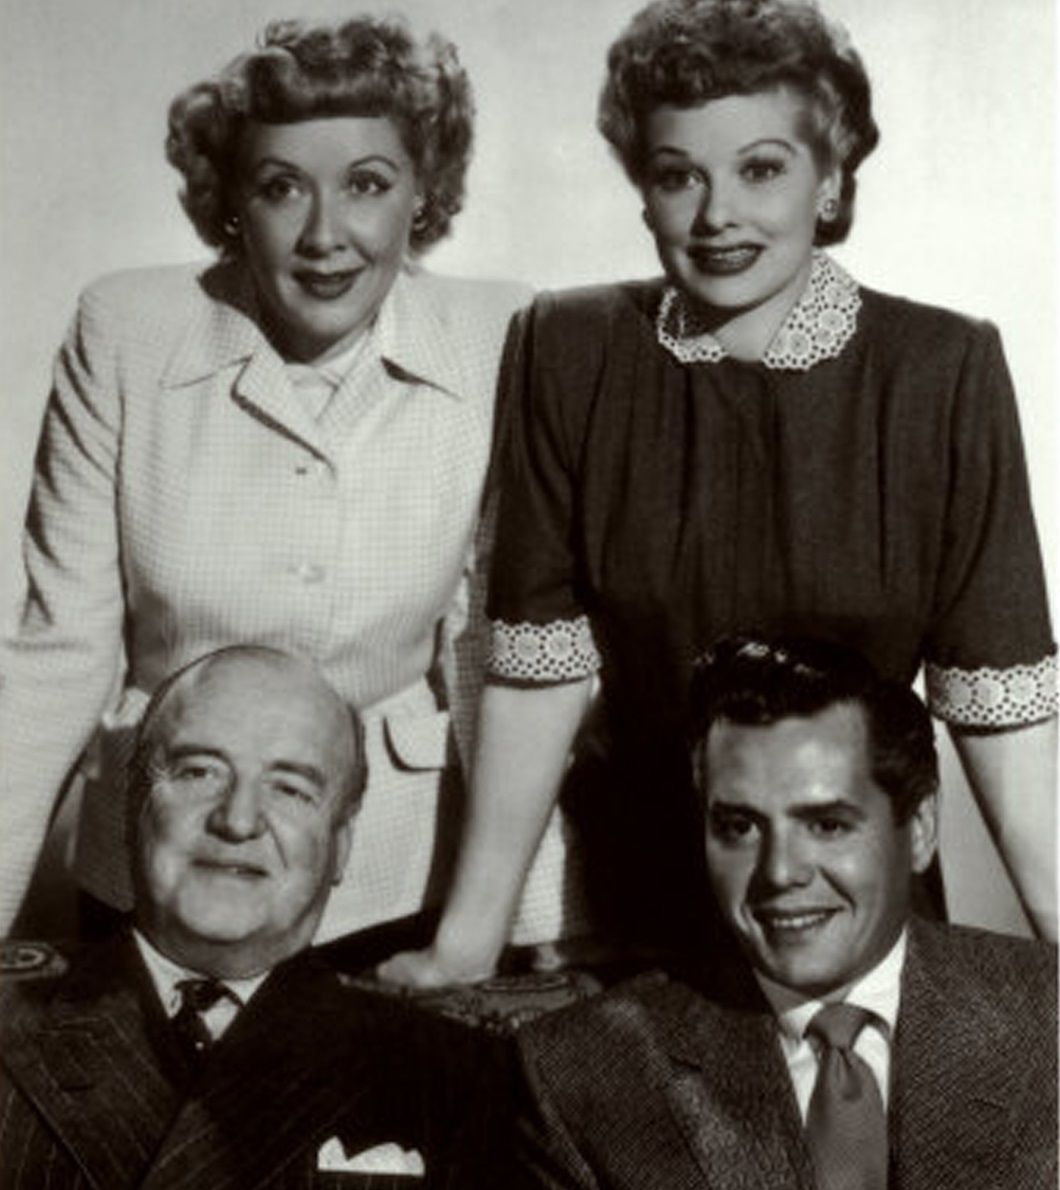 Ethel was married to Fred (played by William Frawley ...